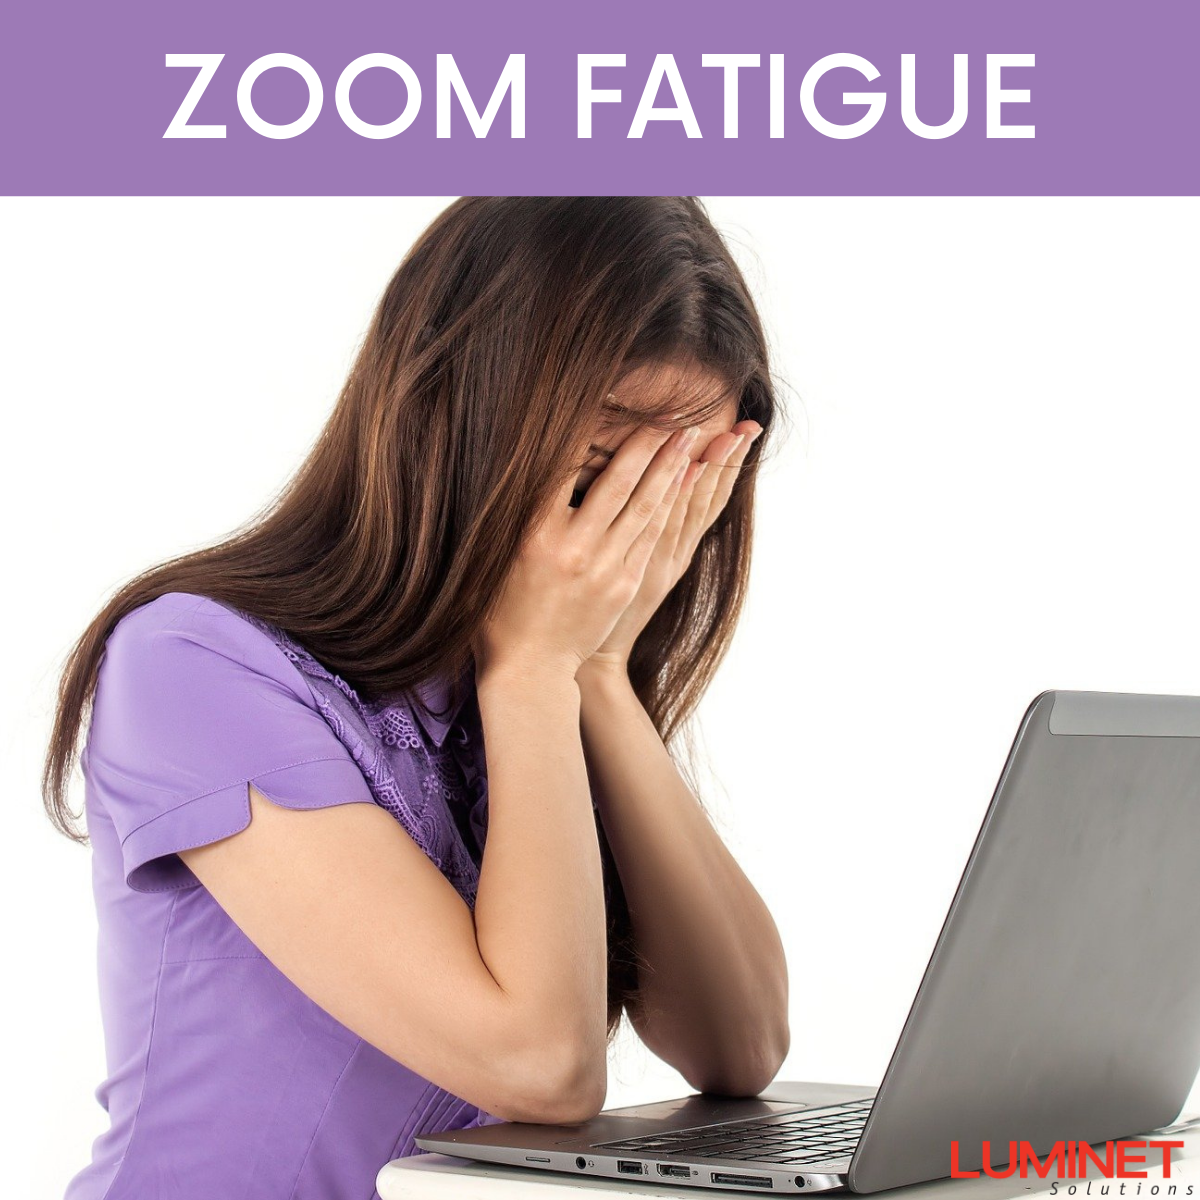 Woman In Purple Outfit In Front Of Her Computer With Her Hands Covering Her Face Due To Zoom Fatigue.